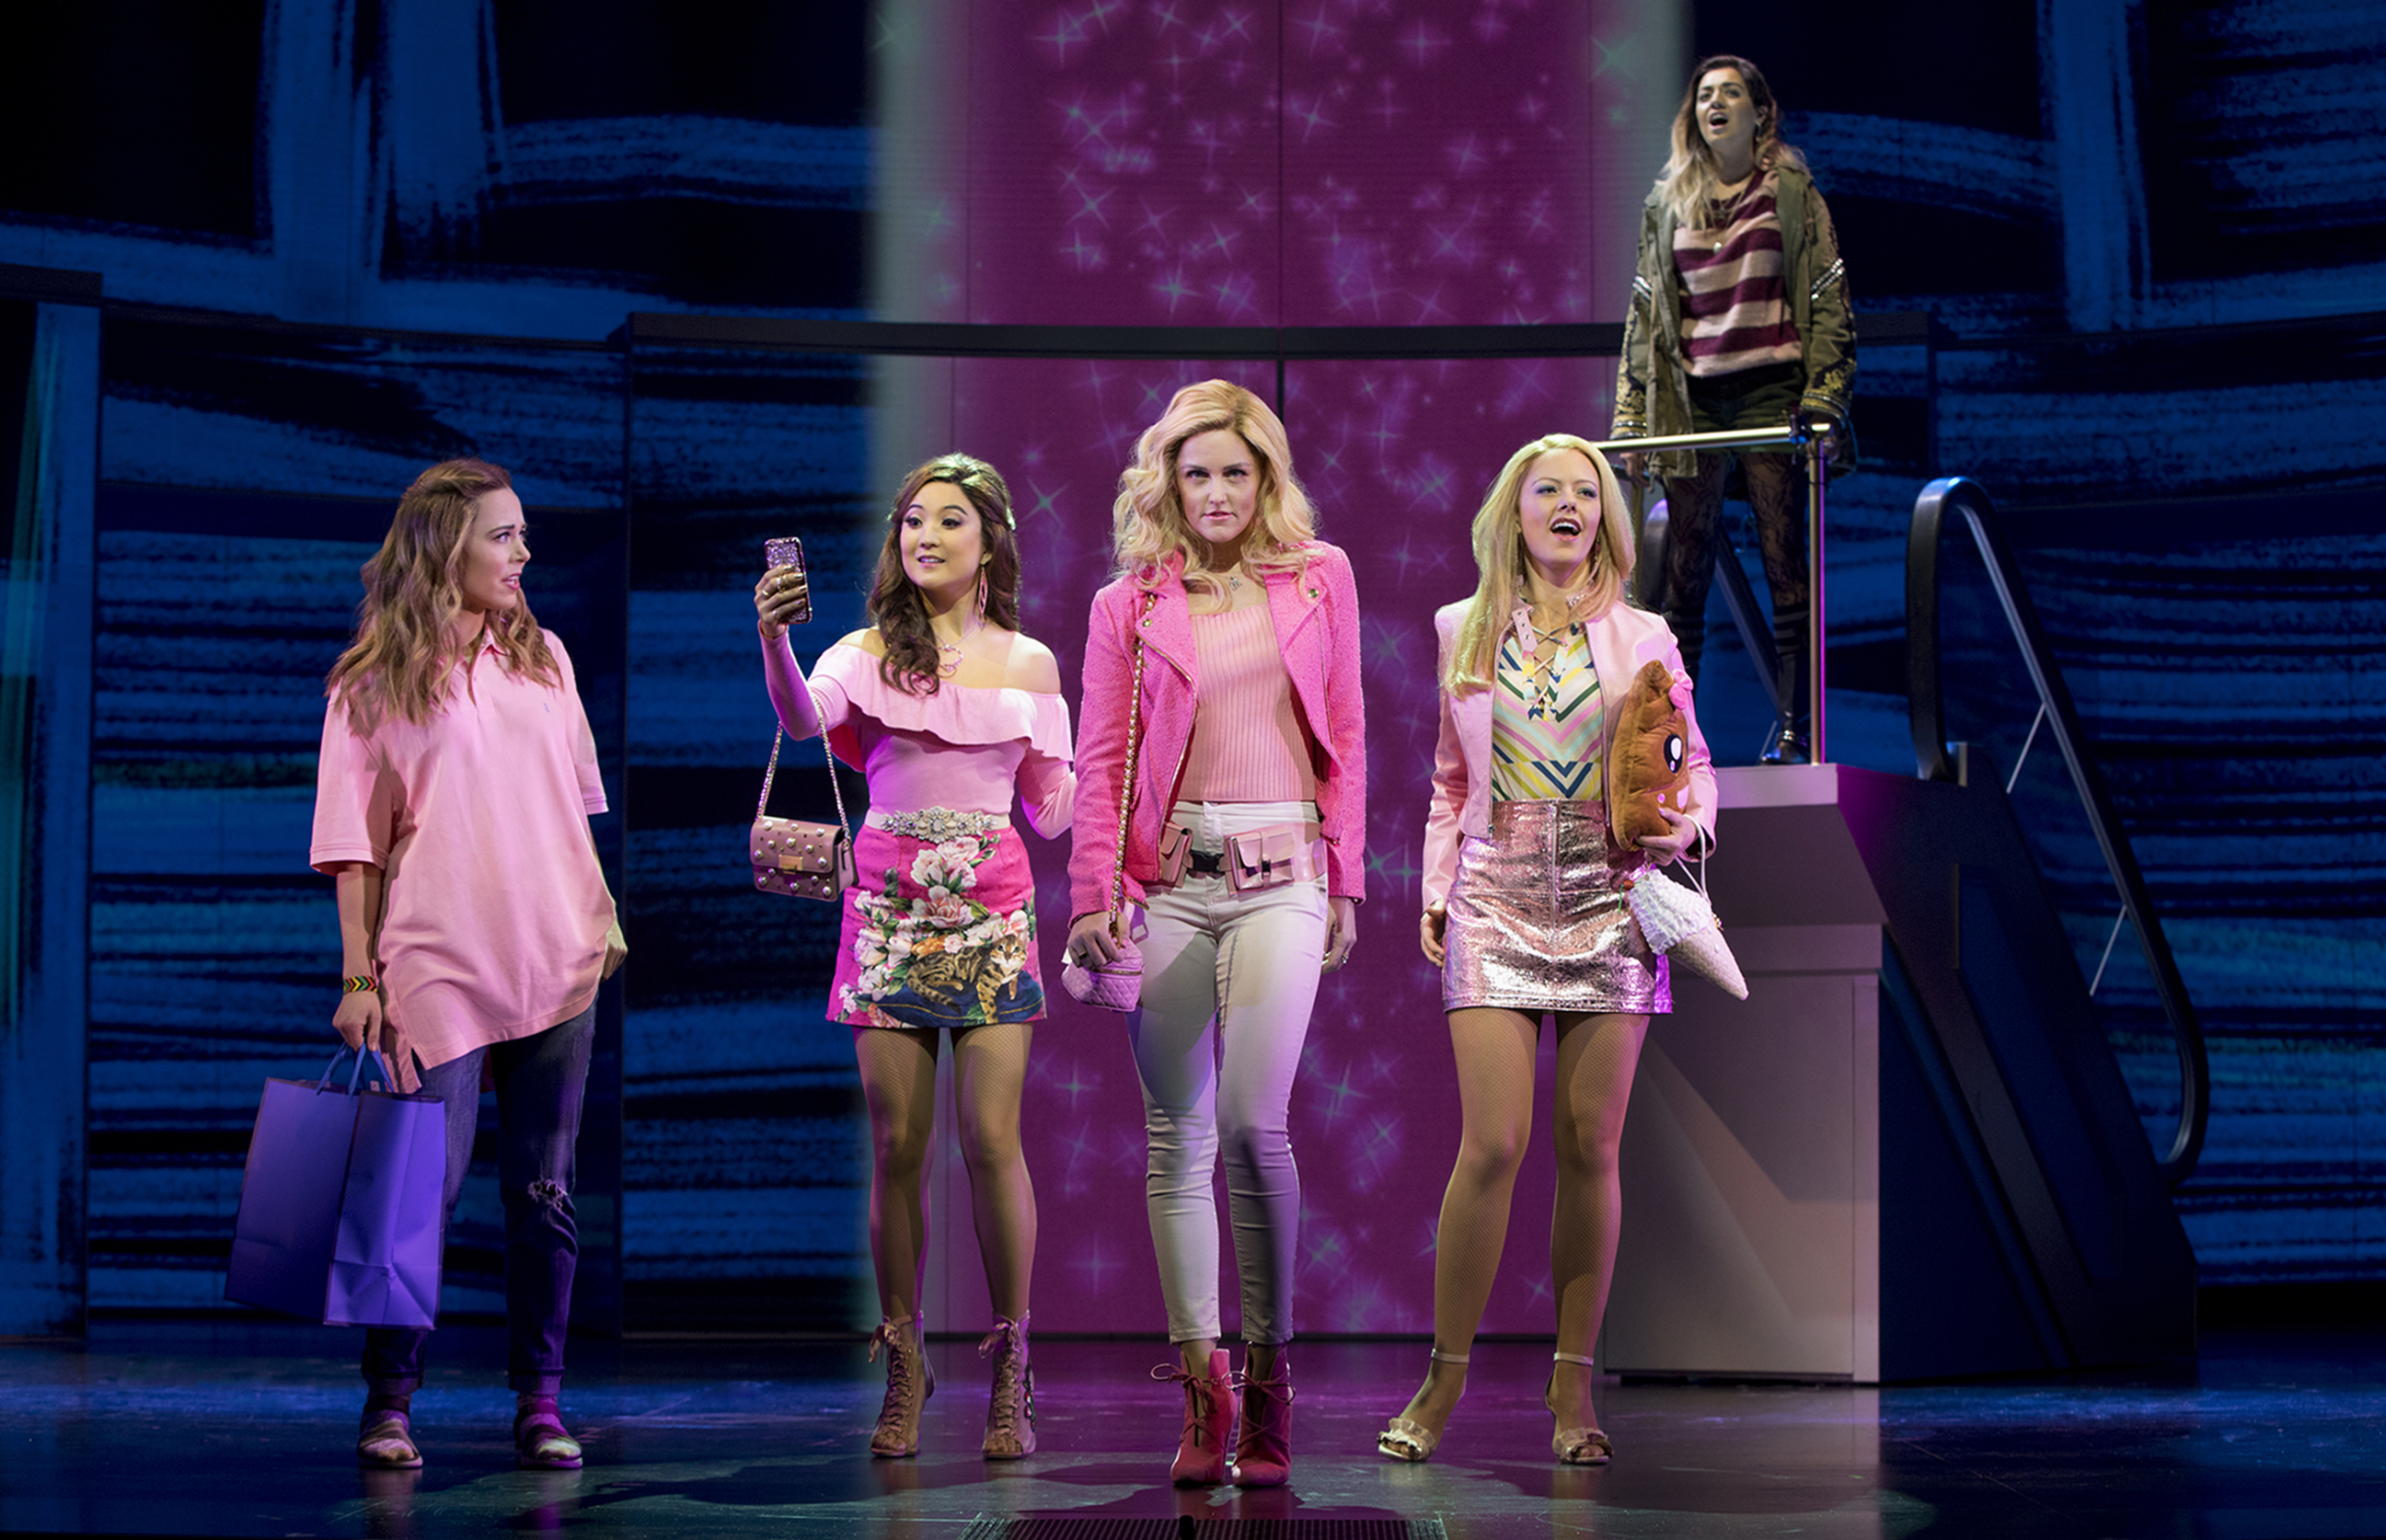 Mean Girls: The musical is landing next year cue the excitement